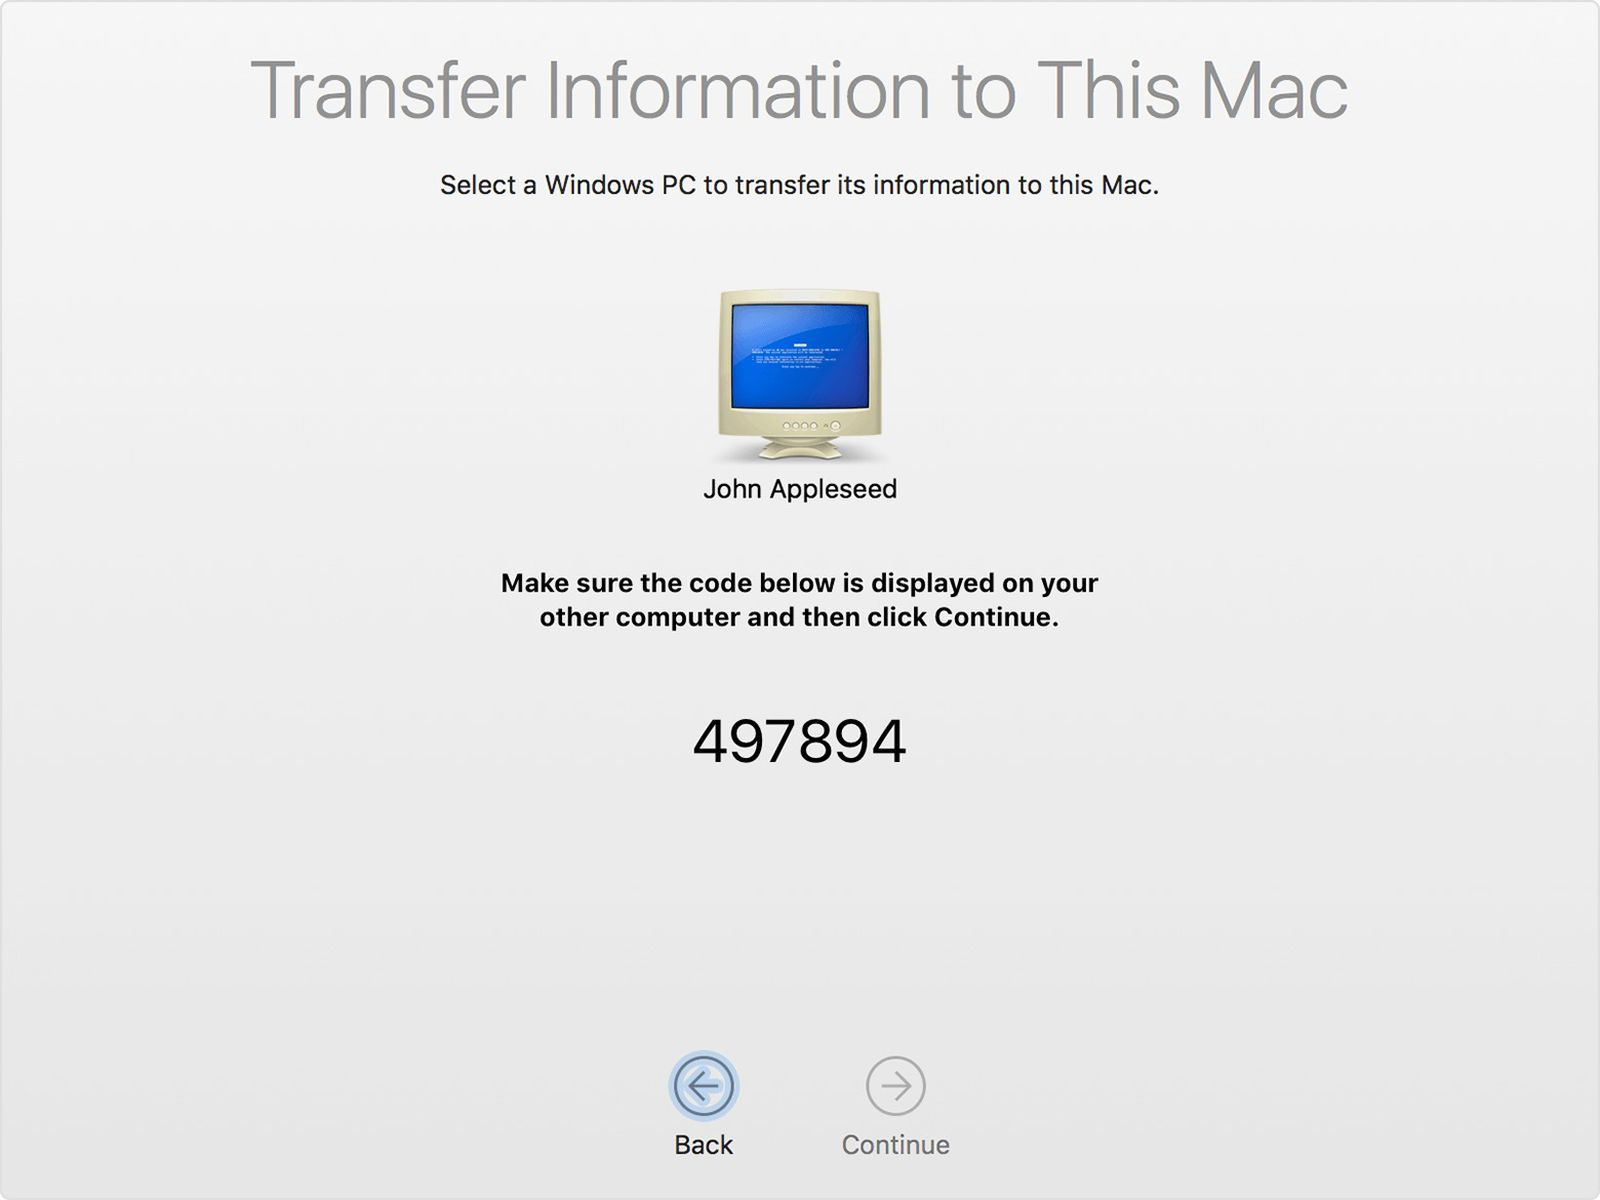 macos sierra migration assistant from windows pc code.'